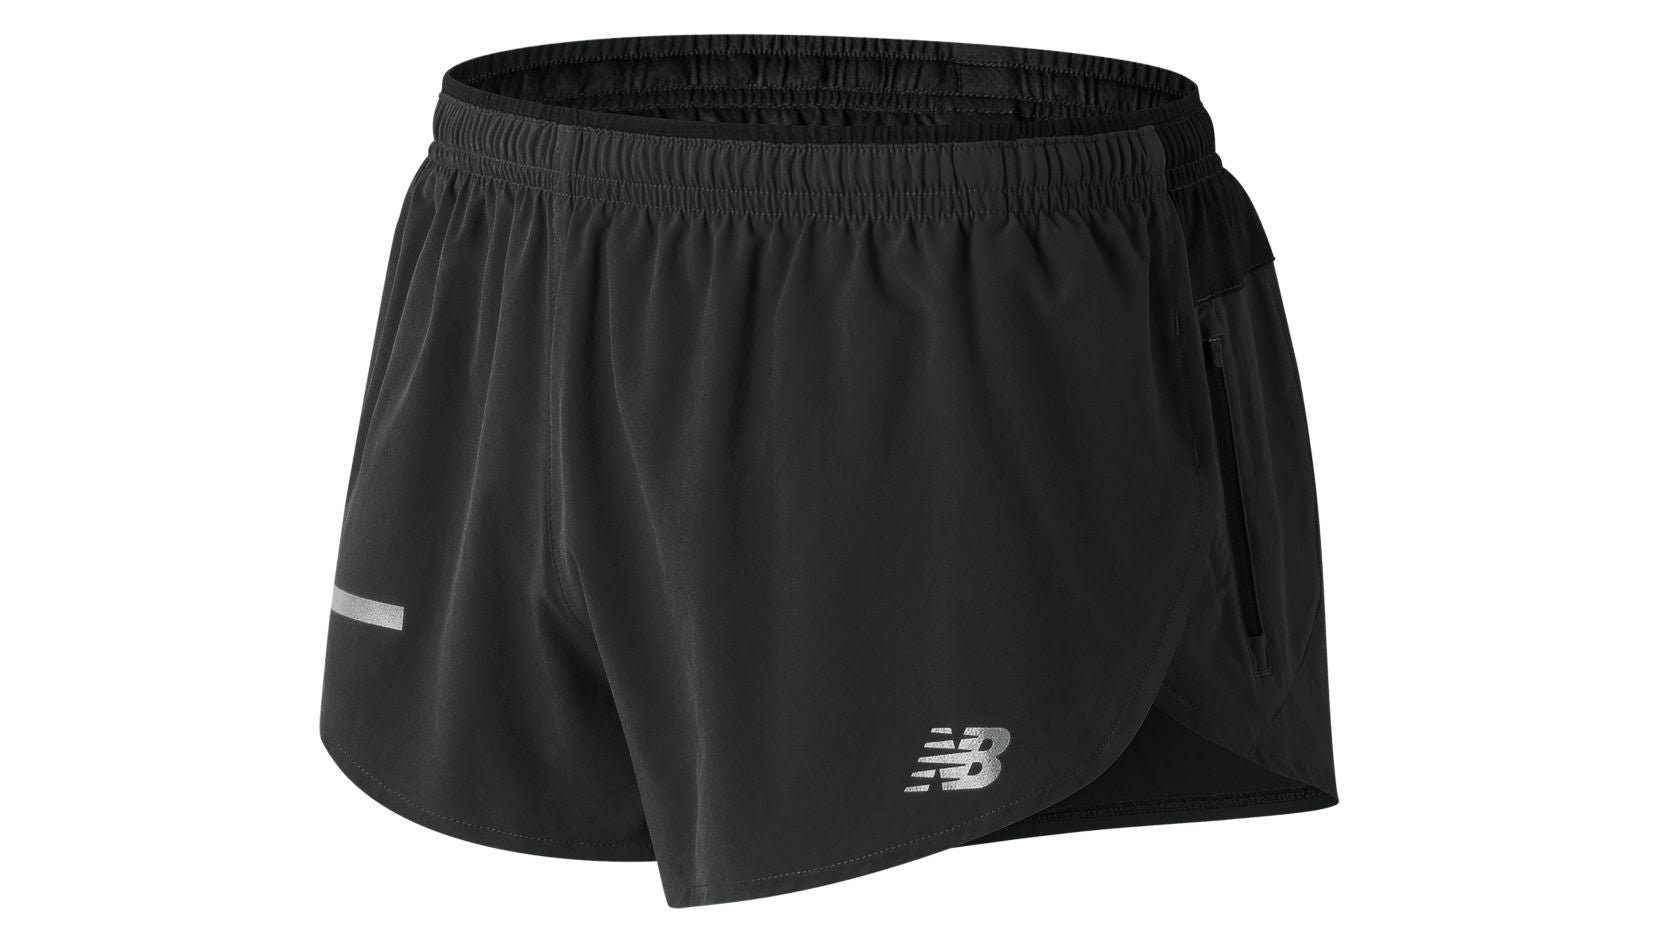 NB Impact Split Short (M) - BK (Black)